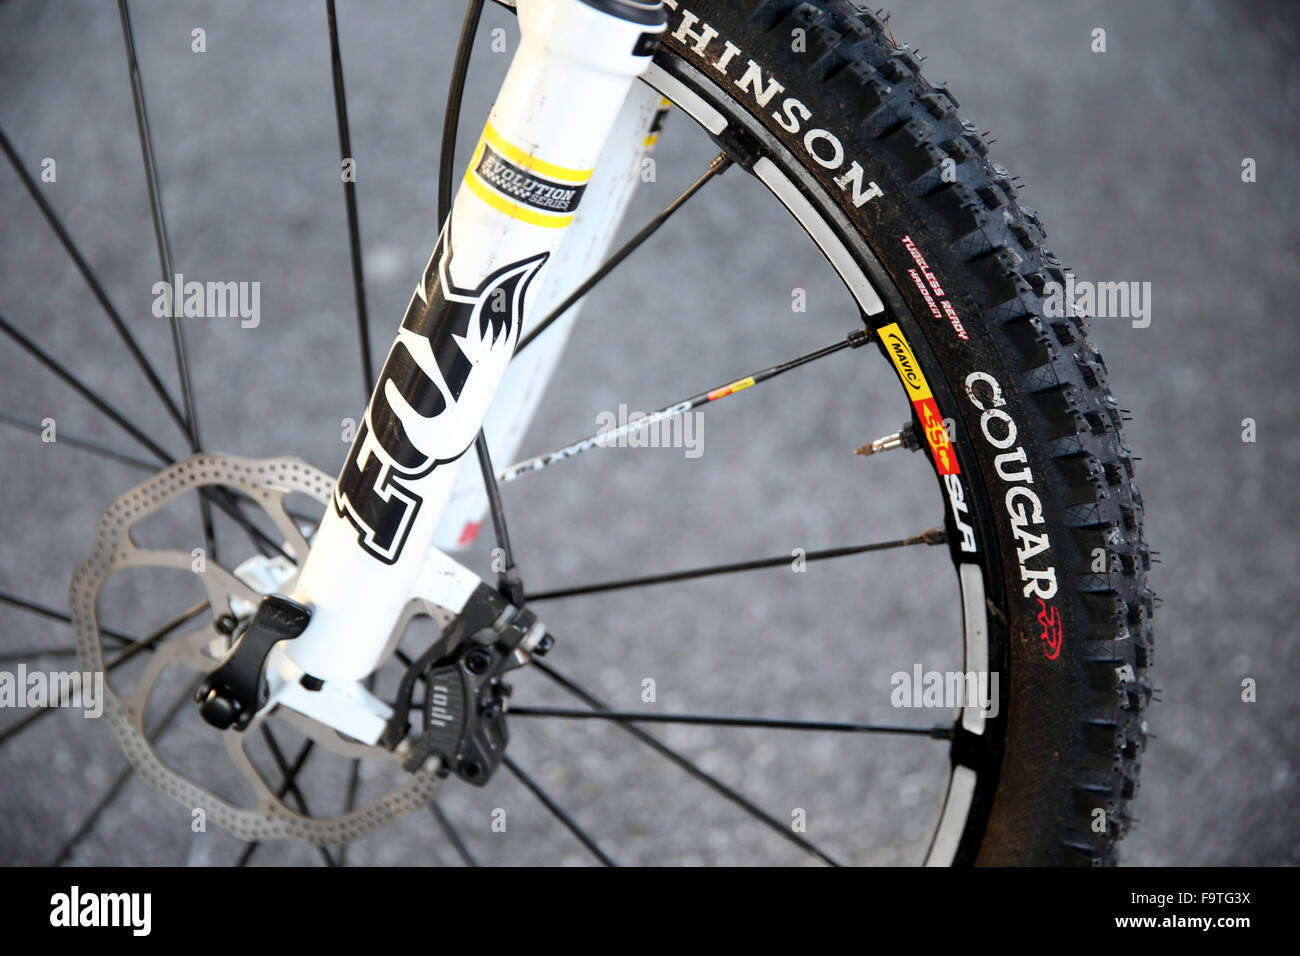 Mountain bike with spiked tires. - Stock Image